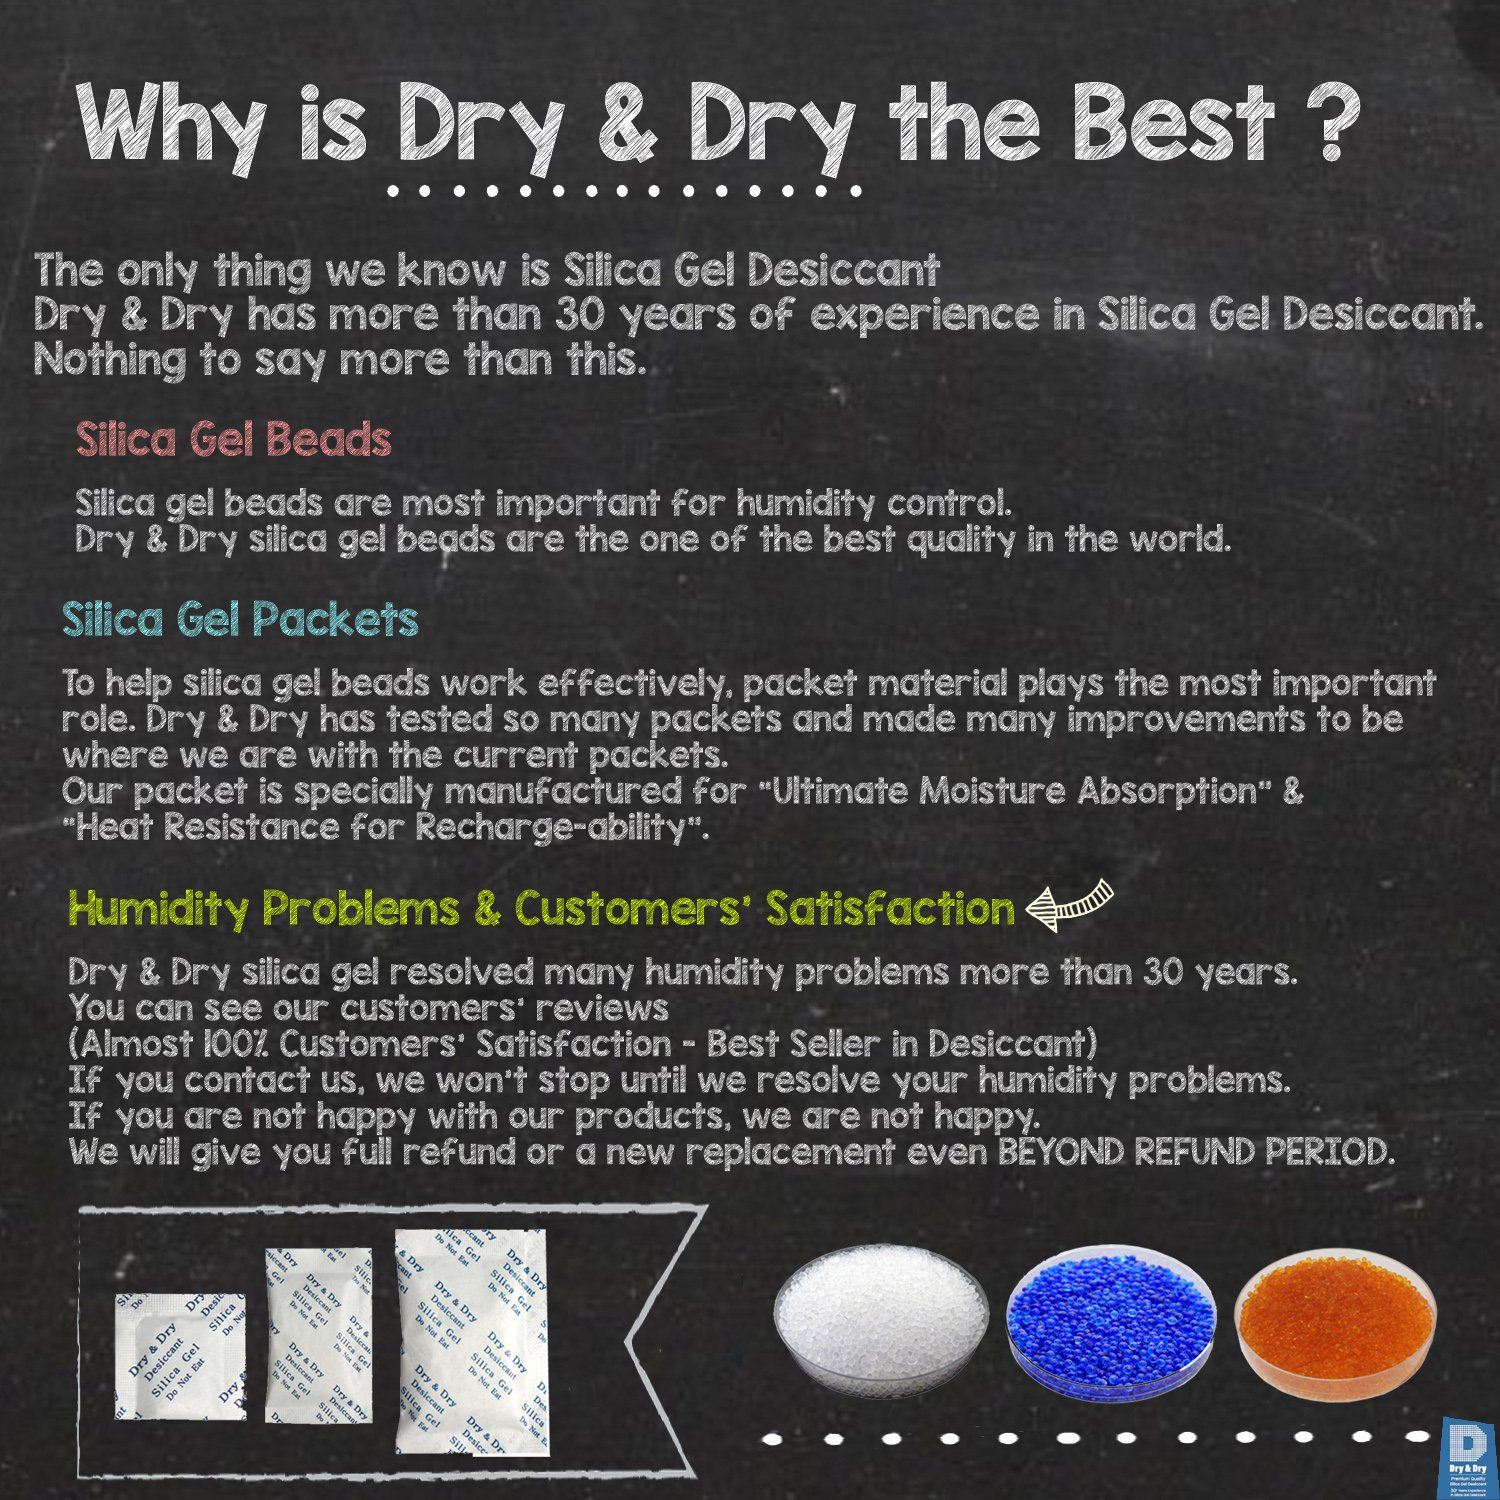 7 Packets Silica Gel Packs Desiccant Dehumidifier Blue to Pink Rechargeable Silica Packets for Moisture Absorber Silica Gel Packets Premium Silica Gel Blue Indicating Dry /& Dry 20 Gram